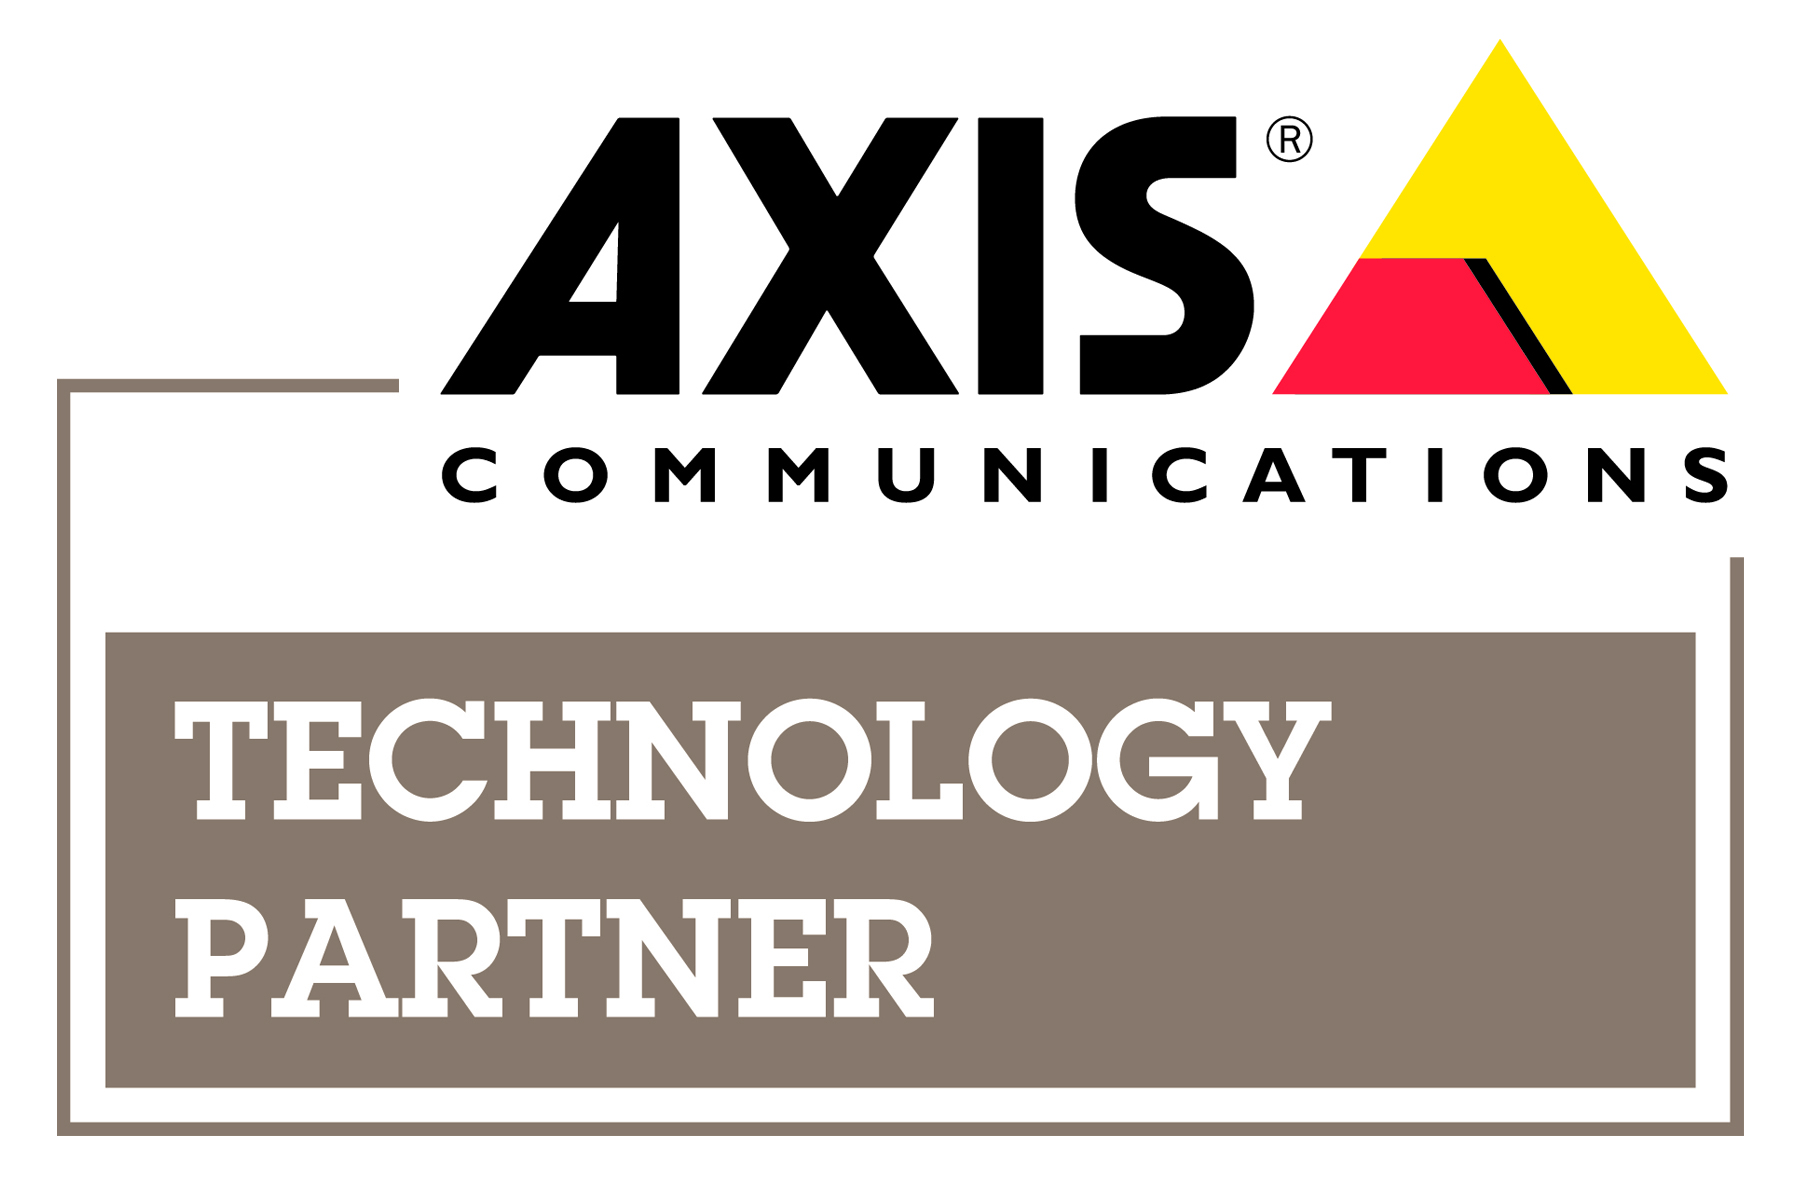 axis_tpp_tech_partner_cmyk_logo._border.jpg